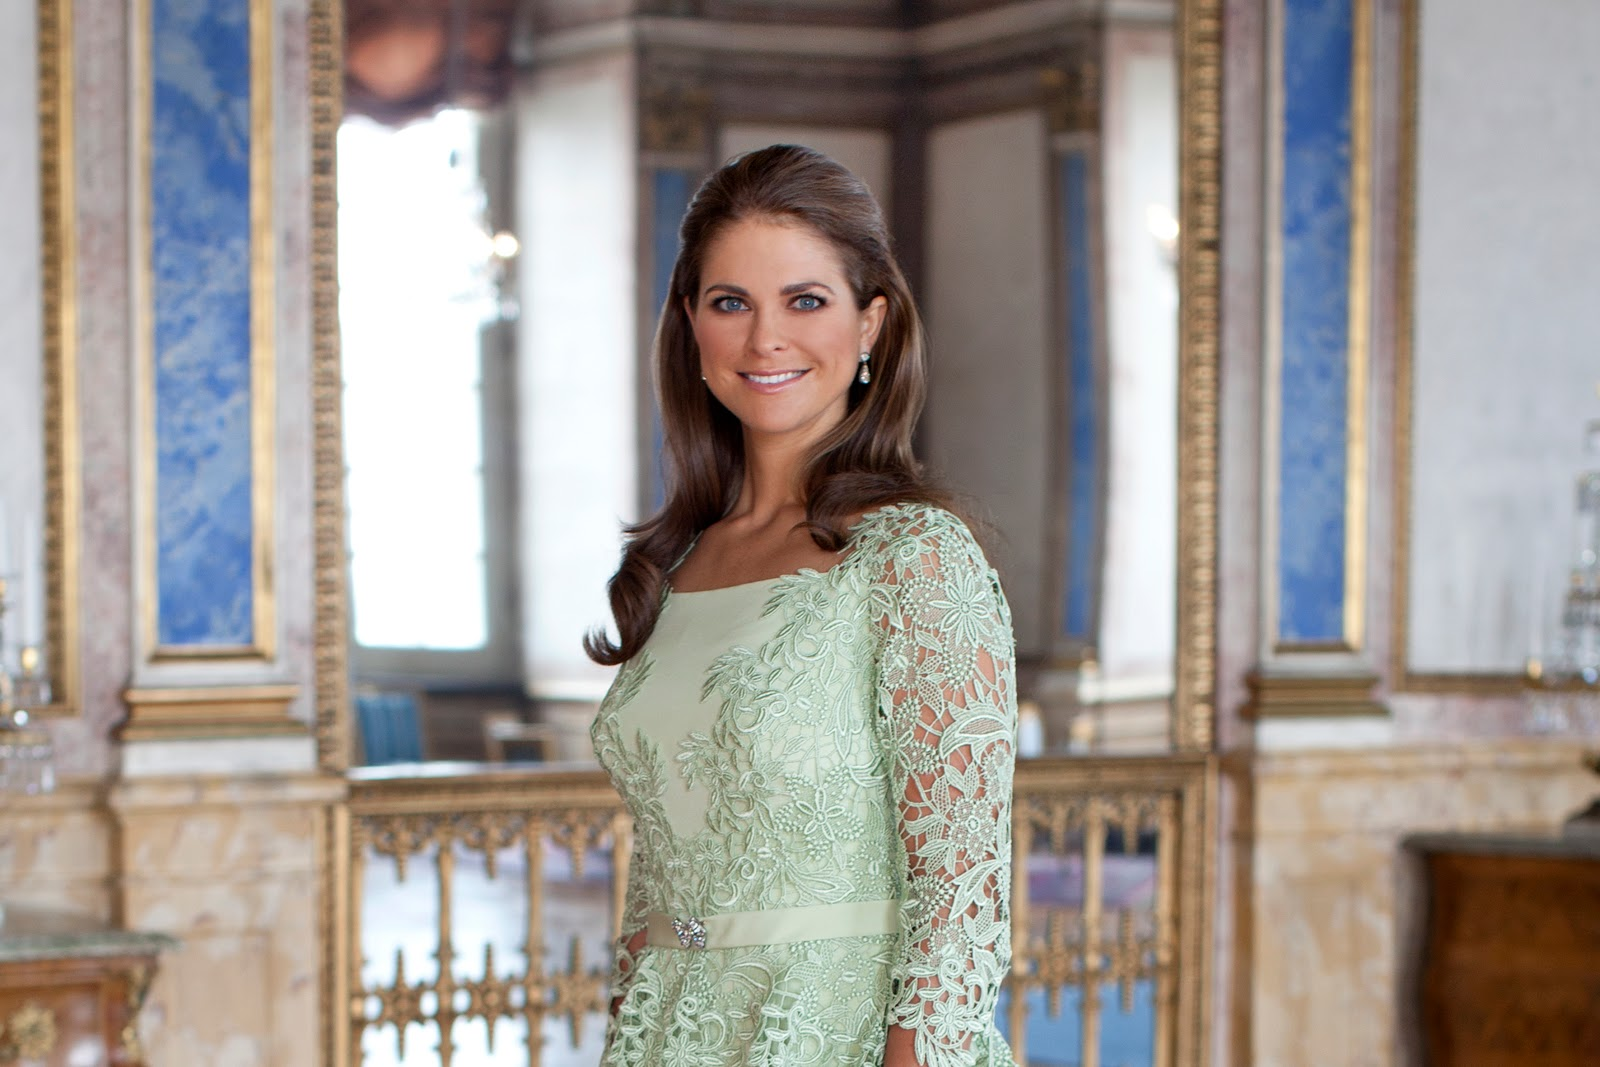 Marie Poutine's Jewels & Royals: Princess Madeleine